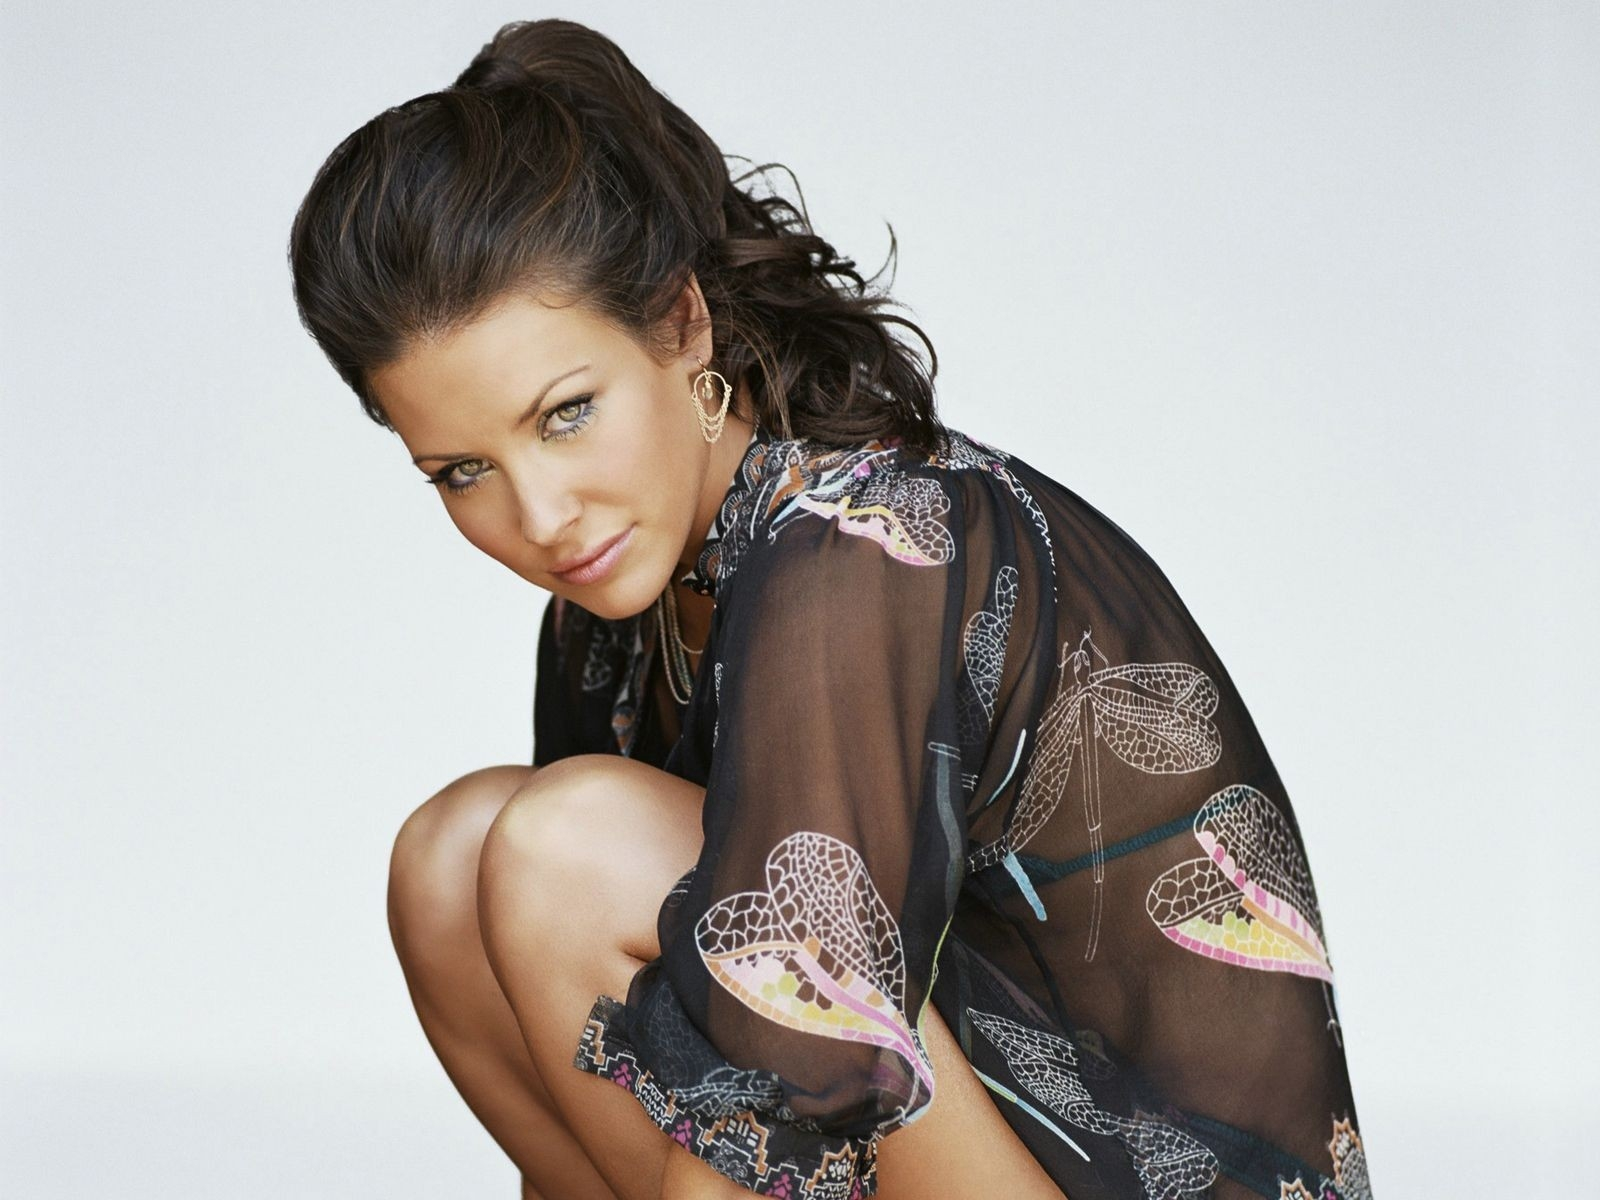 Wallpaper: trasparenze sensuali per Evangeline Lilly